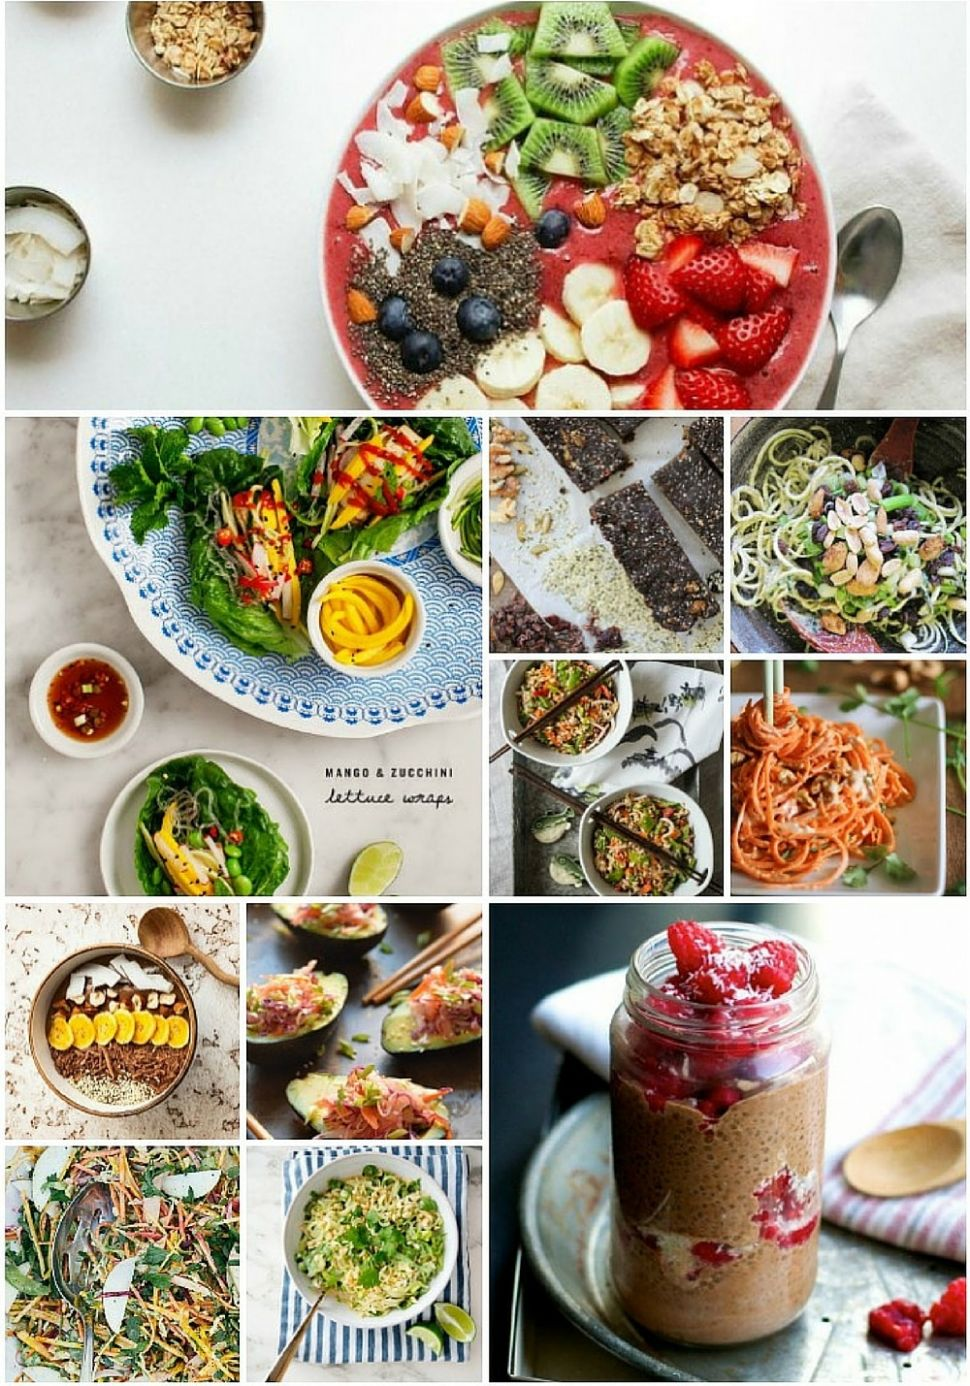 8 Awesome Raw Food Recipes for Beginners to Try   Yuri Elkaim - Simple Recipes Raw Food